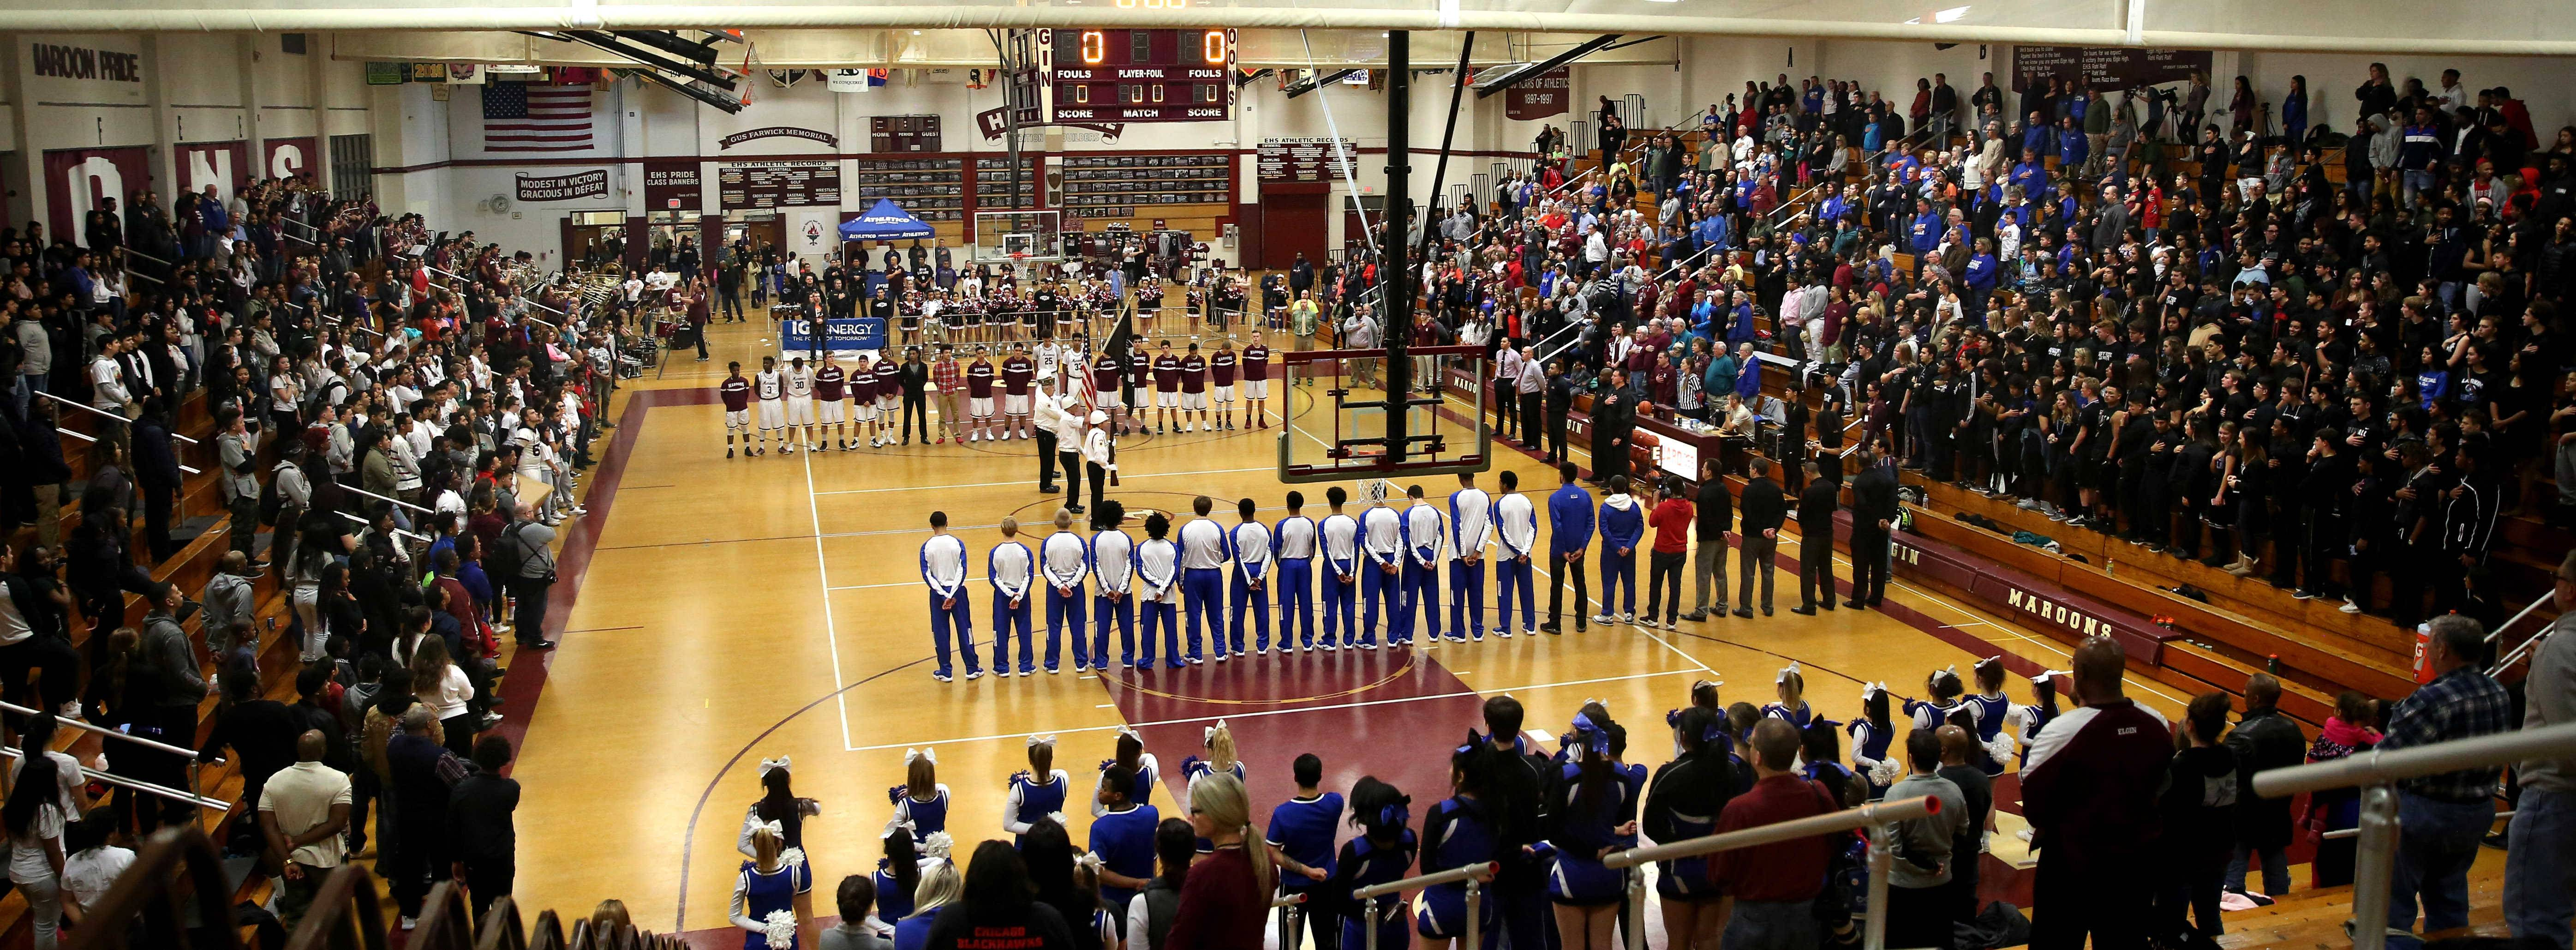 A full house stands as the color guard assembles at center court for the national anthem before crosstown varsity boys basketball action between Elgin and Larkin at Chesbrough Field House on the campus of Elgin High School Friday night.